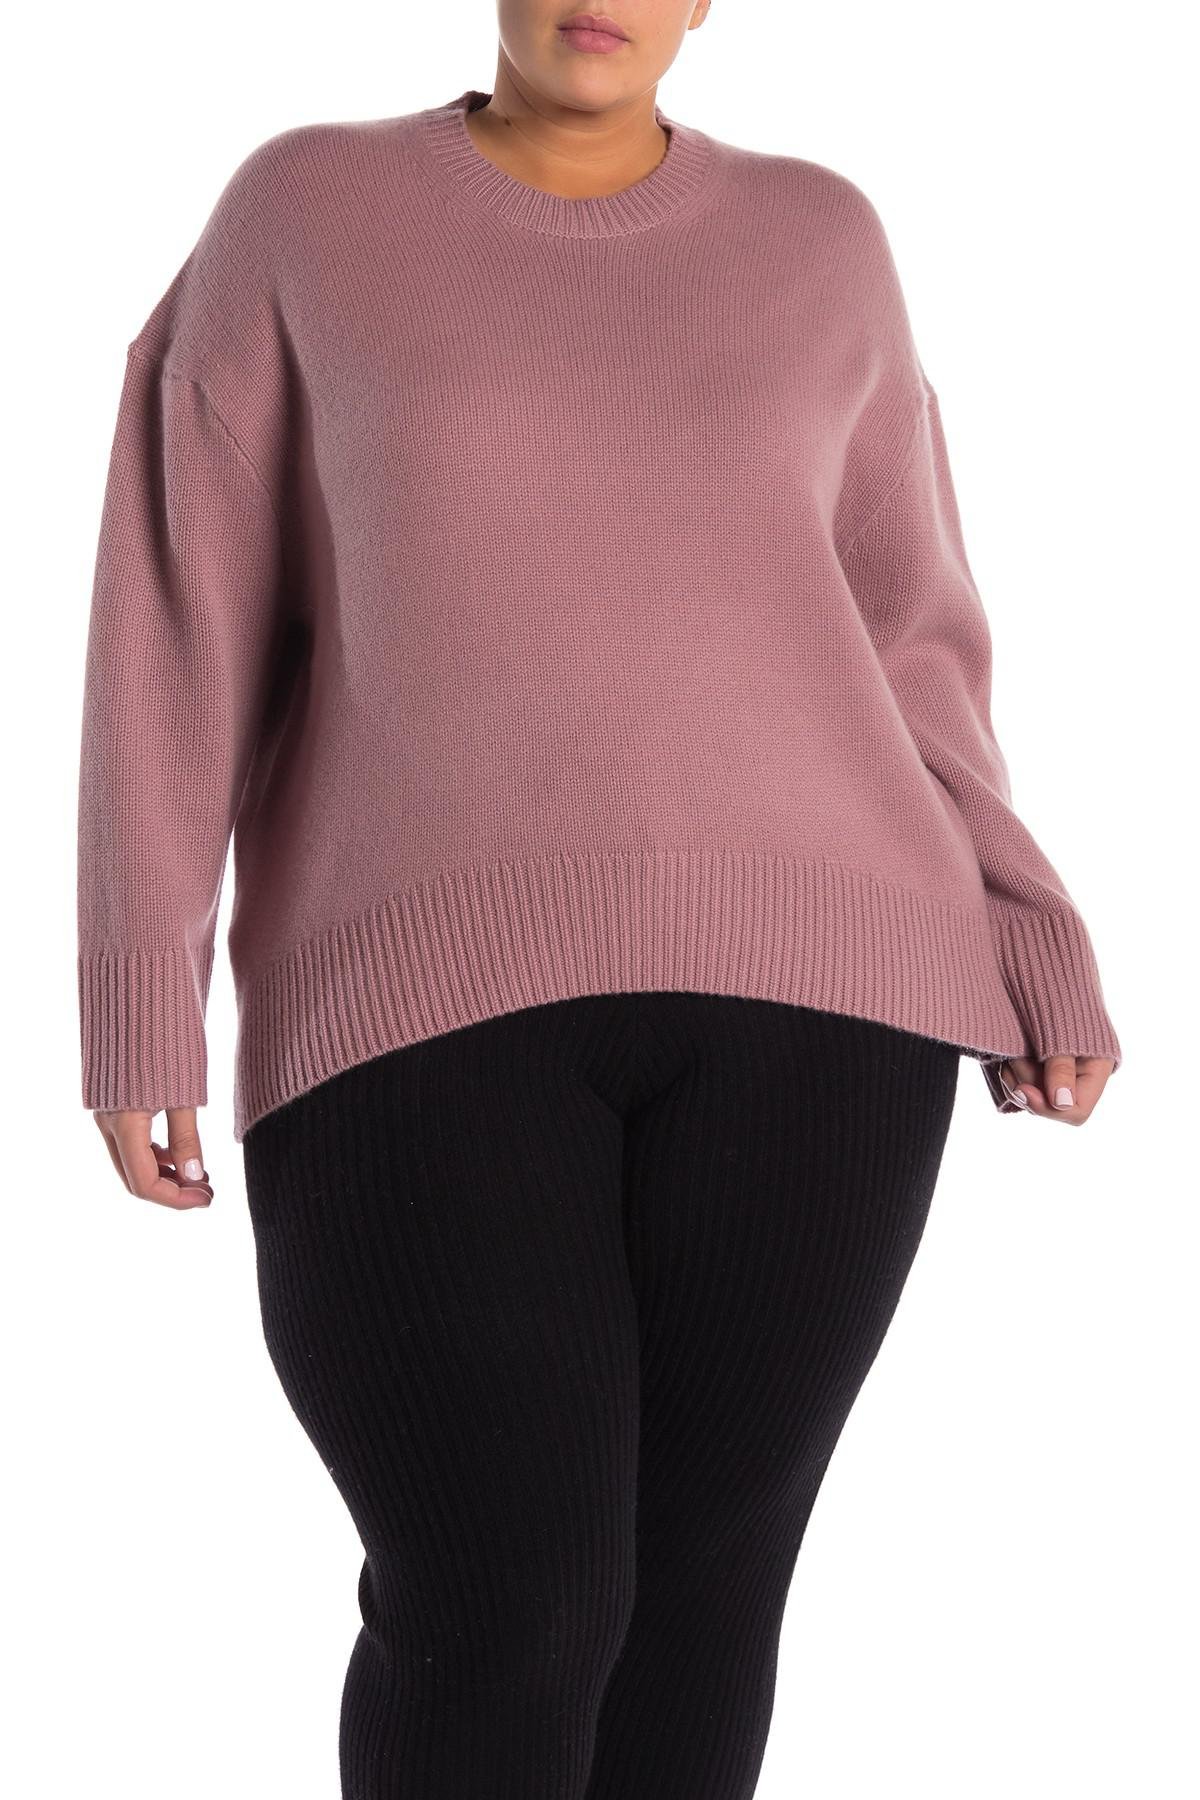 5ea4b9b64c2 Lyst - NAKEDCASHMERE Holliday Cashmere Sweater (plus Size) in Pink